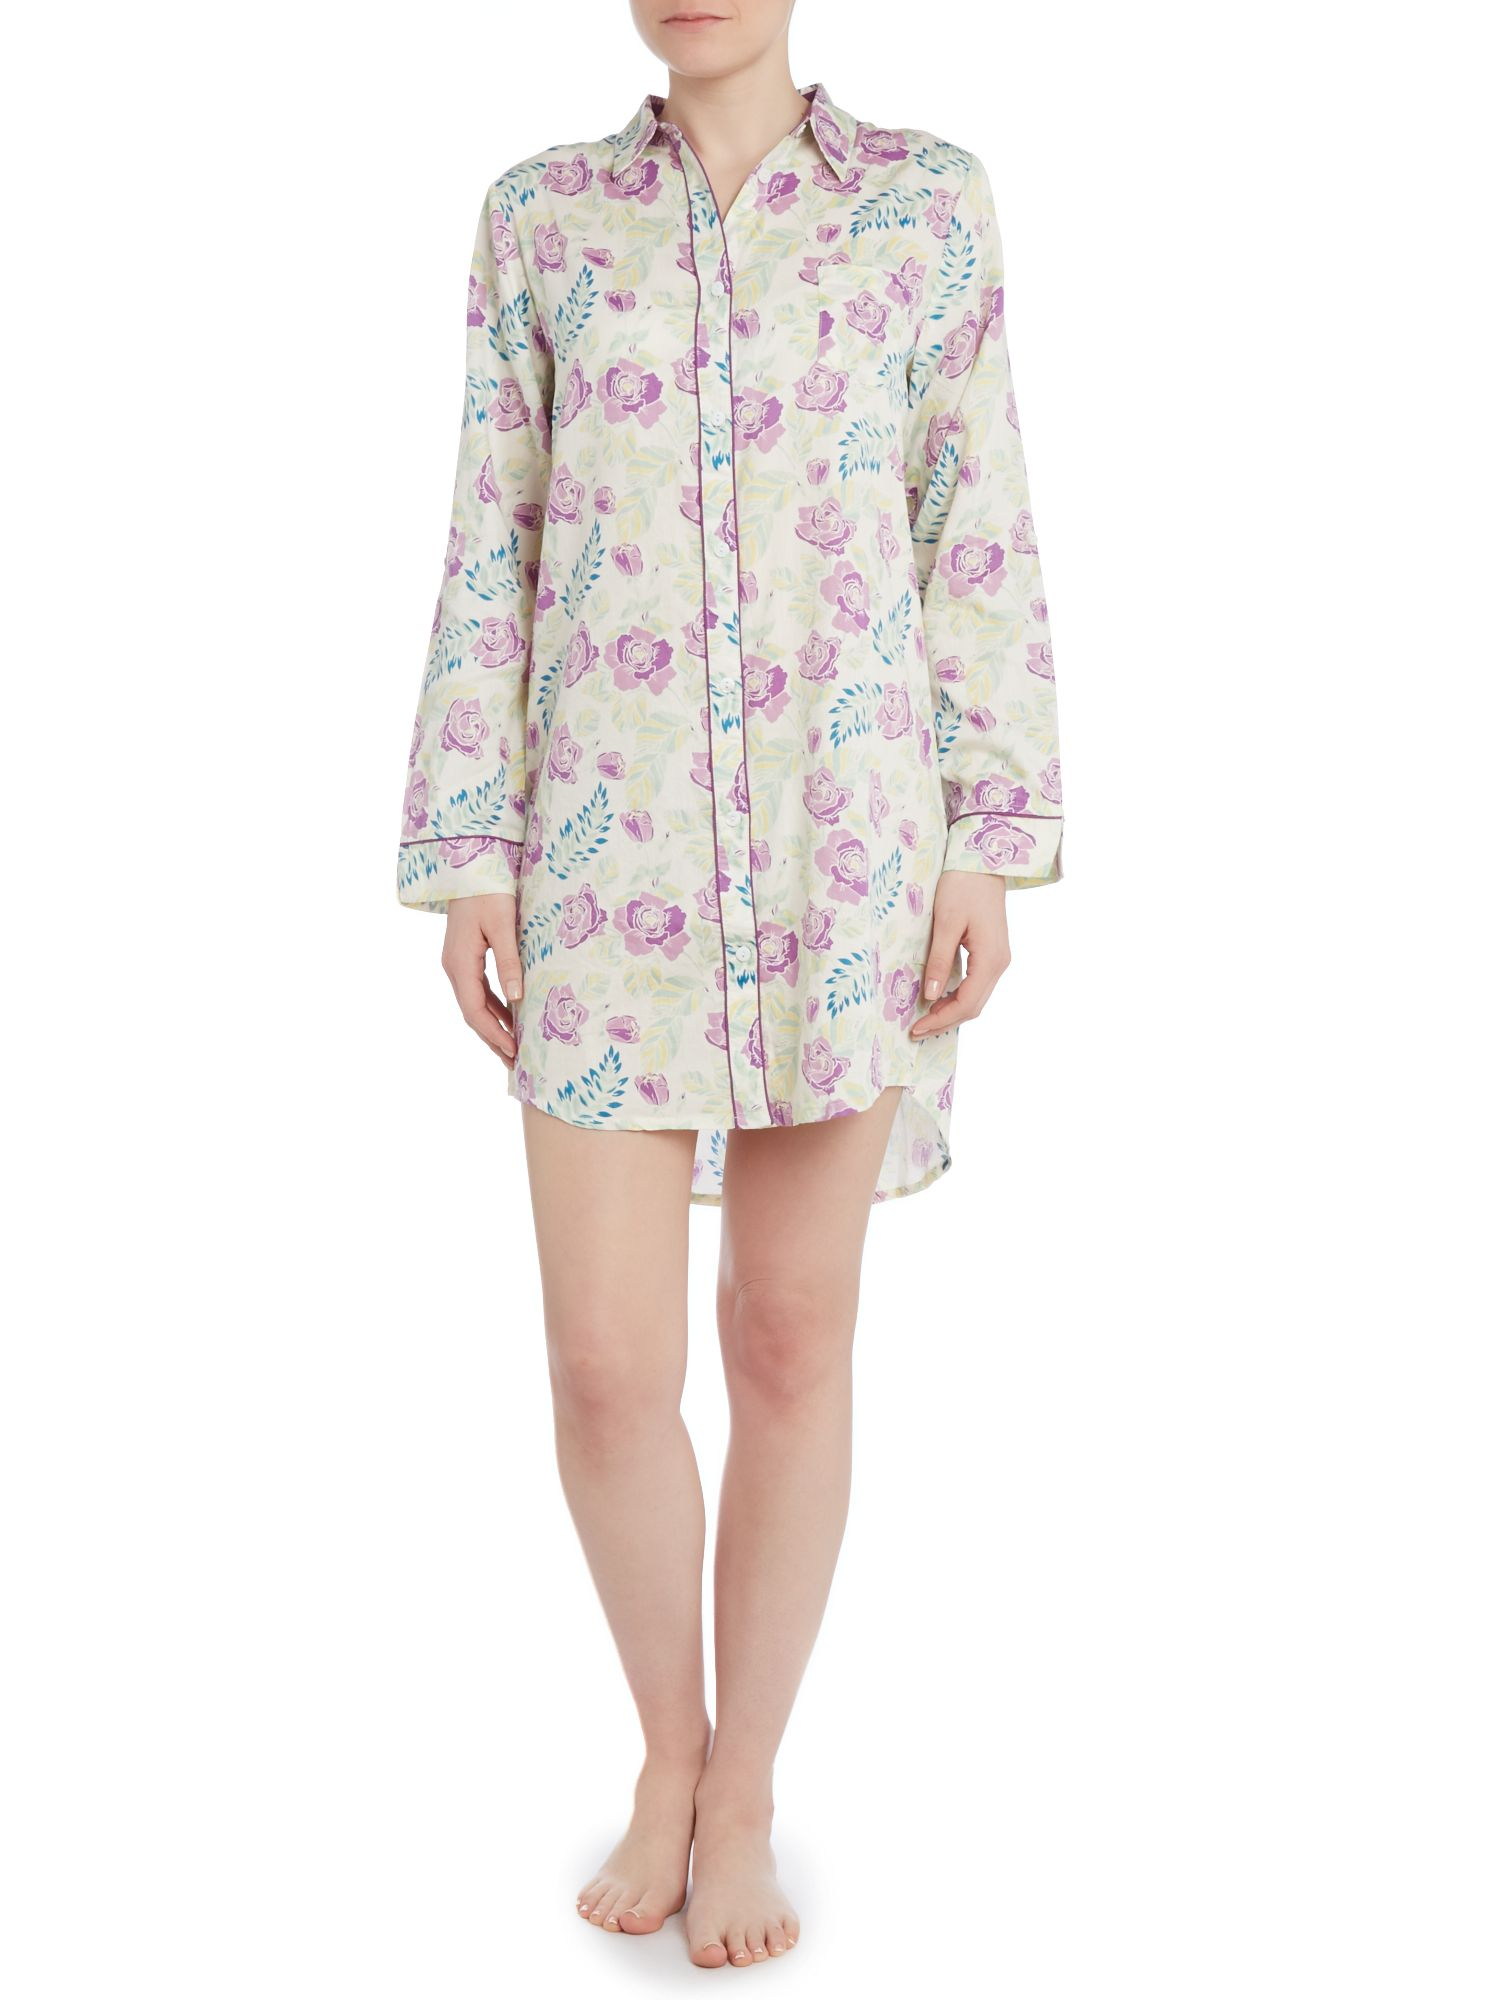 Evelyn vintage floral nightshirt